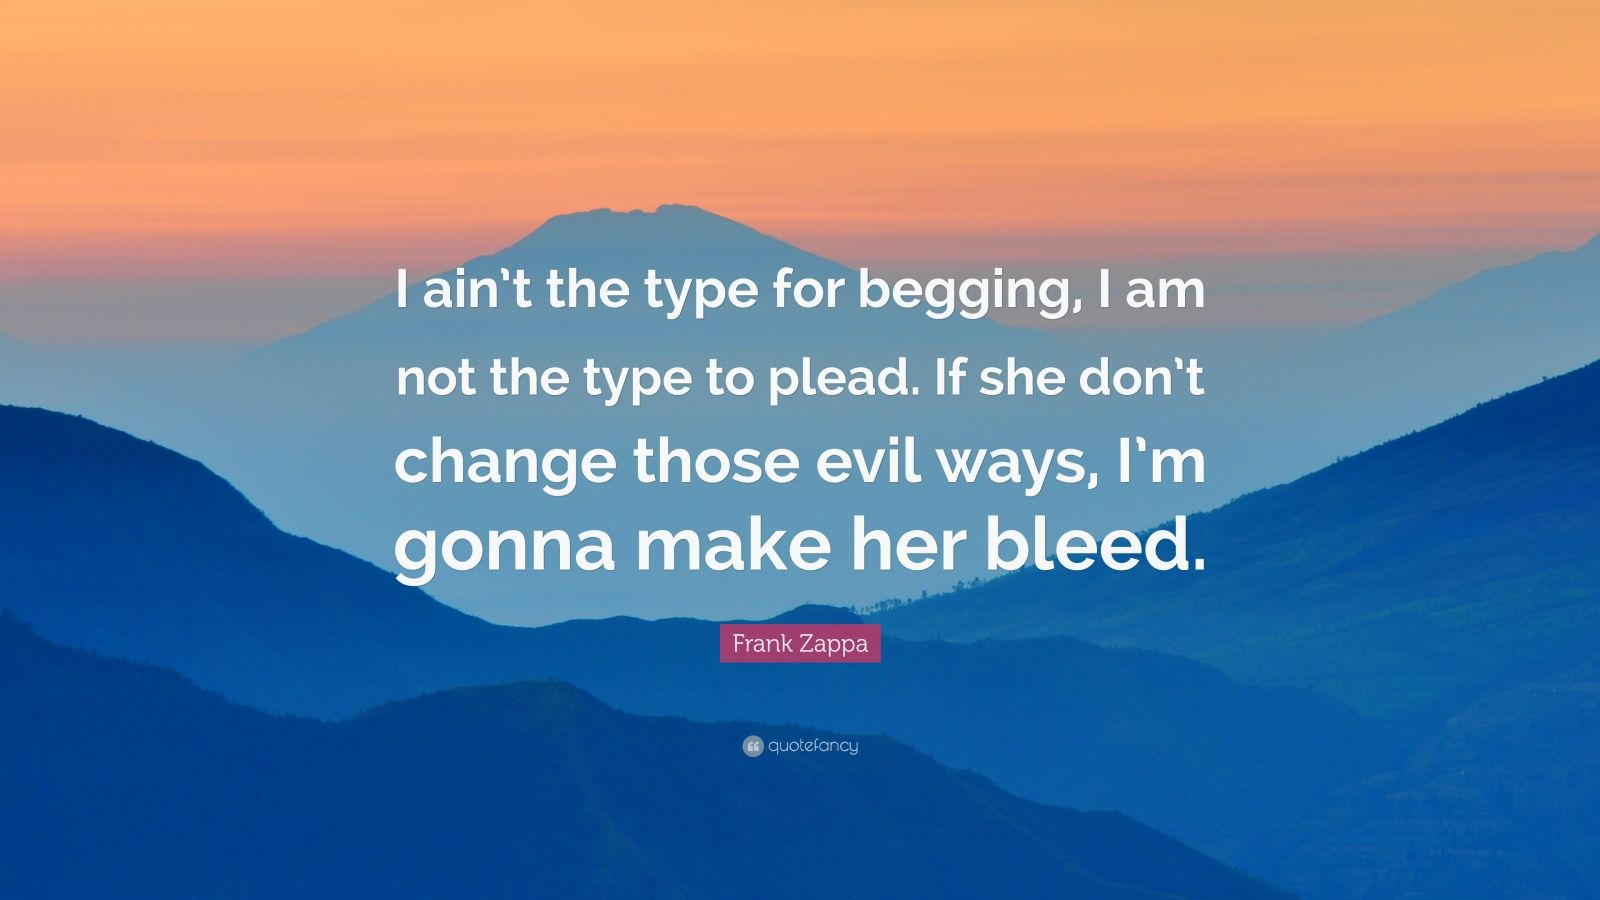 """Frank Zappa Quote: """"I ain't the type for begging, I am not the type to plead. If she don't change those evil ways, I'm gonna make her bleed."""""""